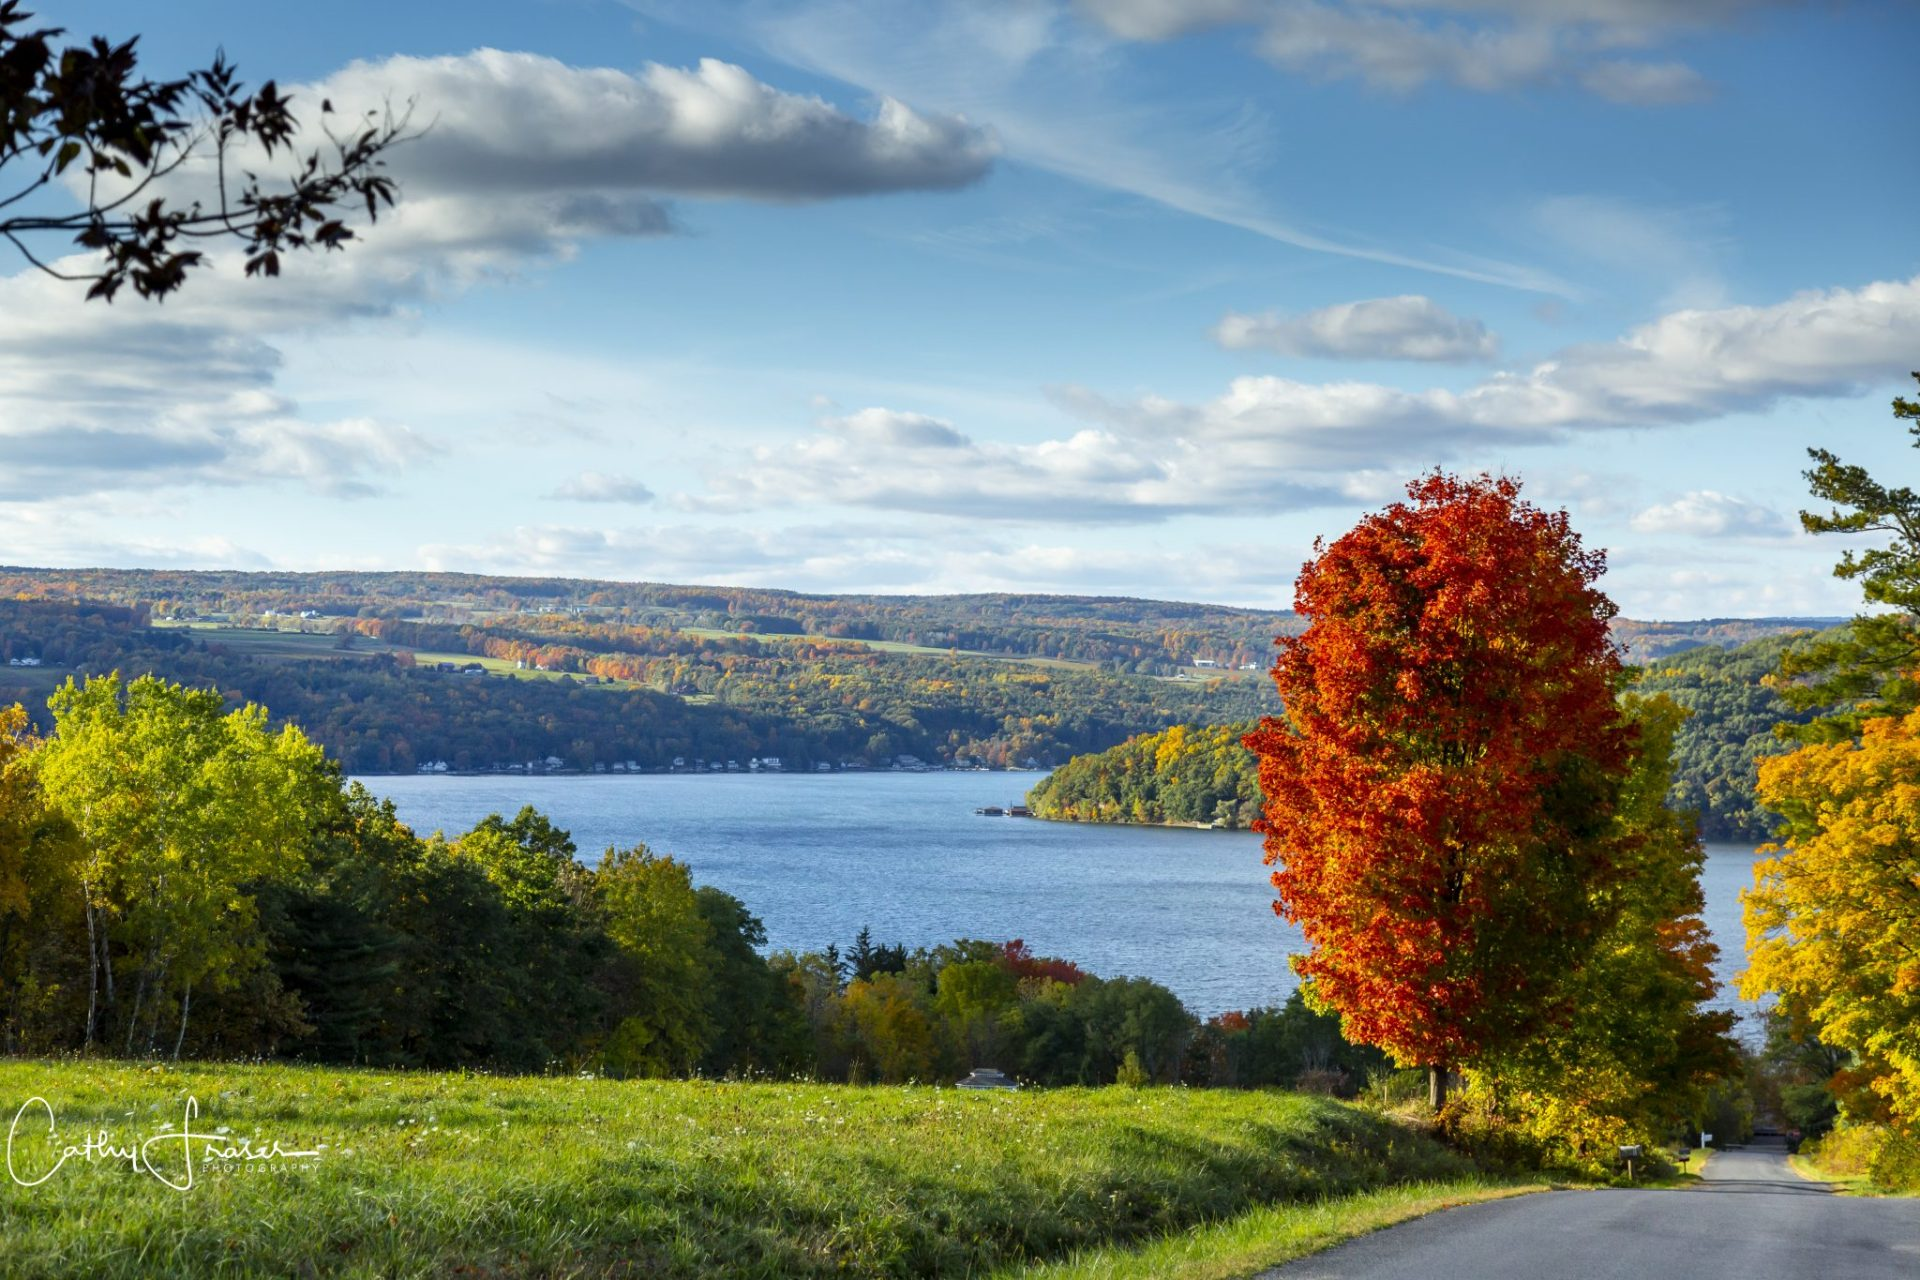 Landscape Photography of a lake in New York